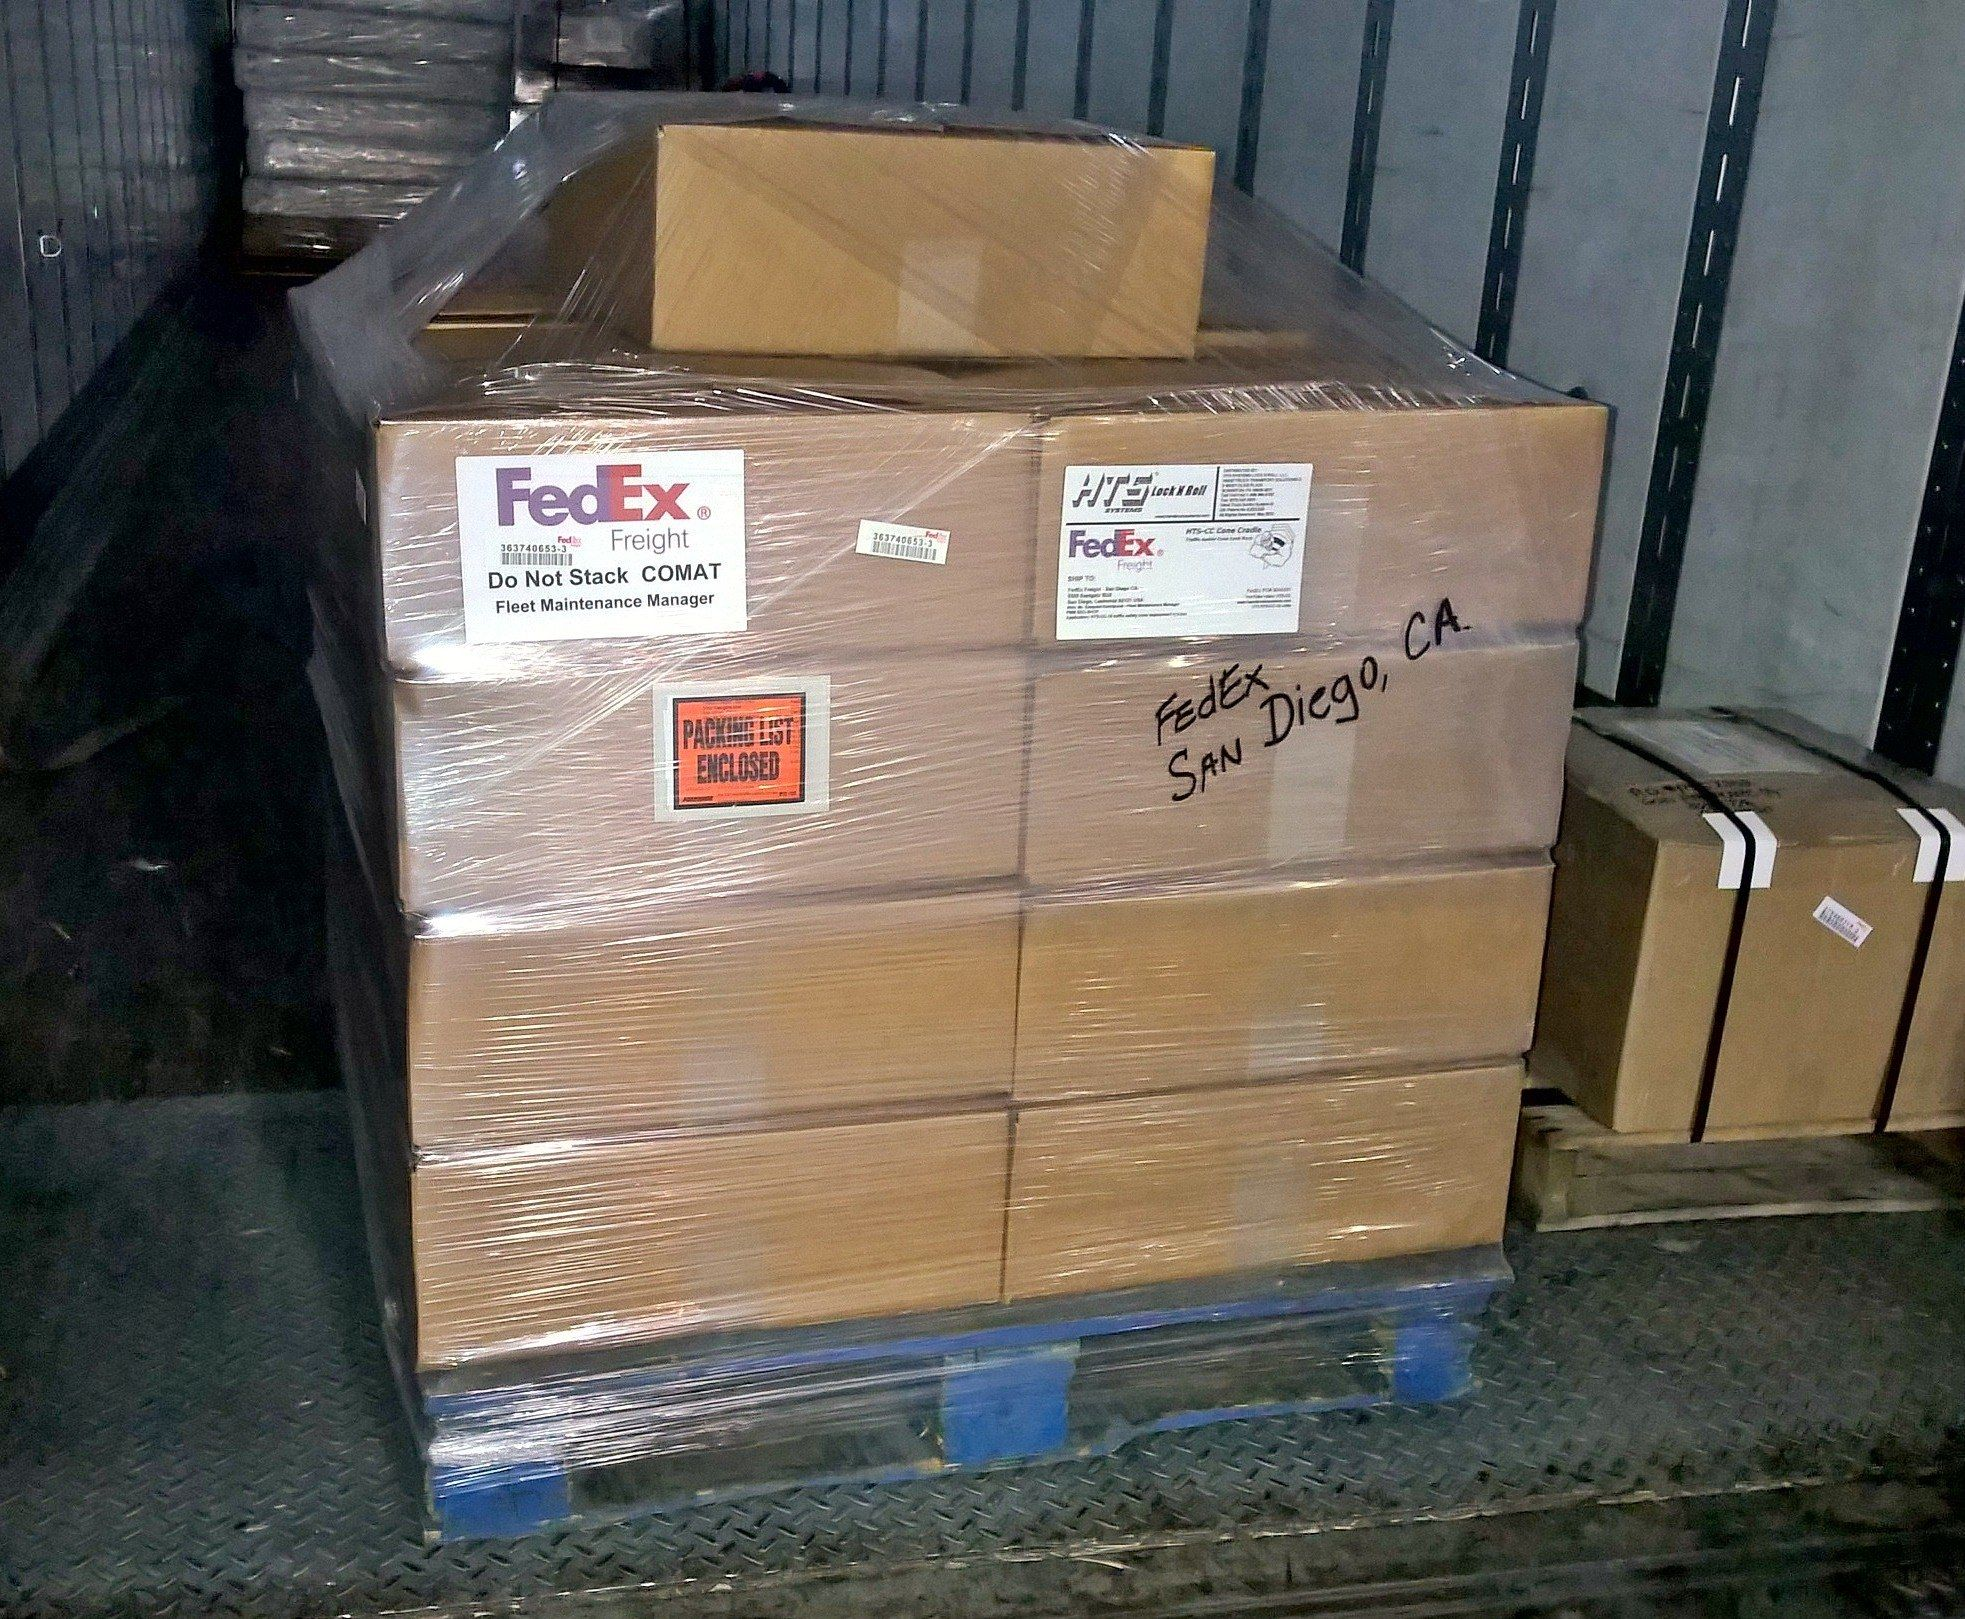 Hts systems htscc18 cone cradle order for fedex freight